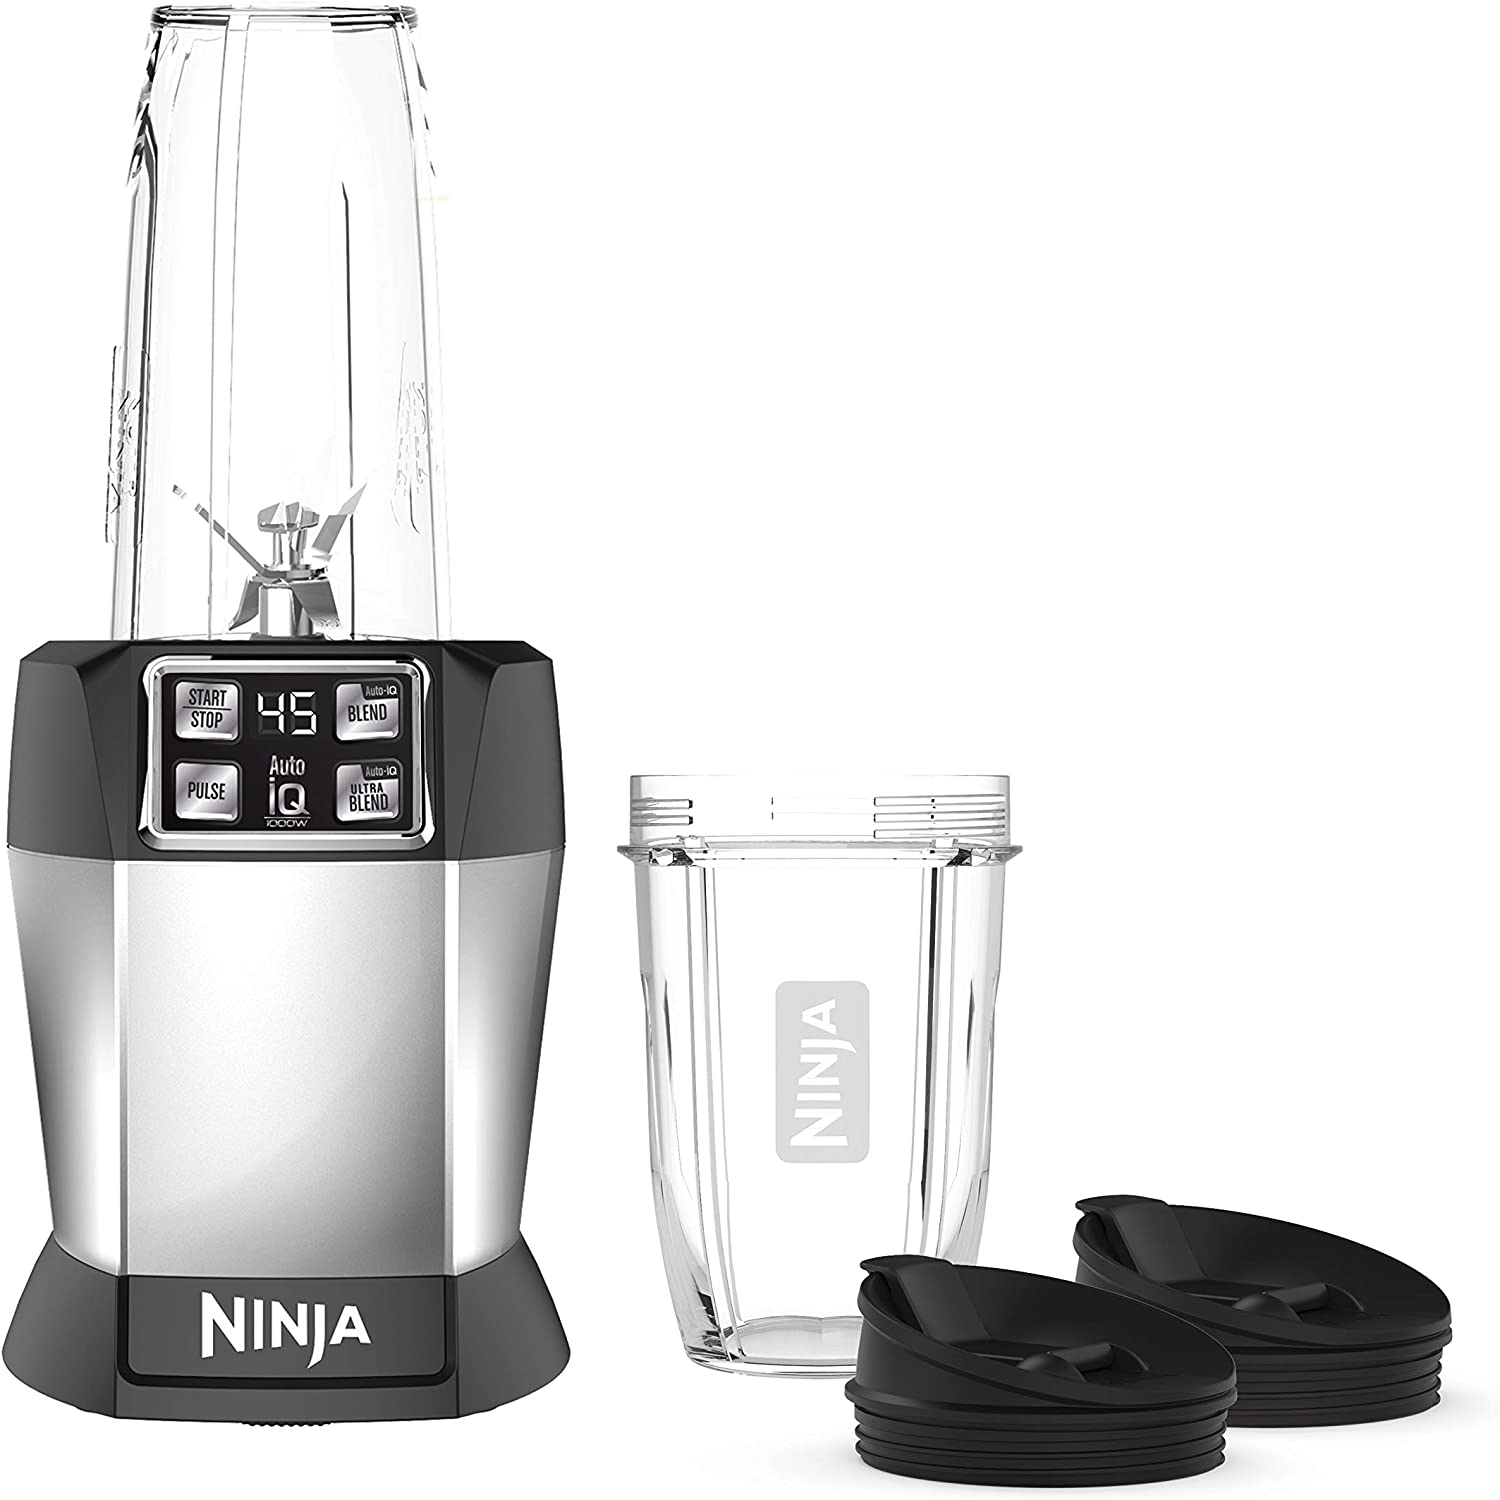 The Nutri Ninja Auto-IQ blender includes two jars.